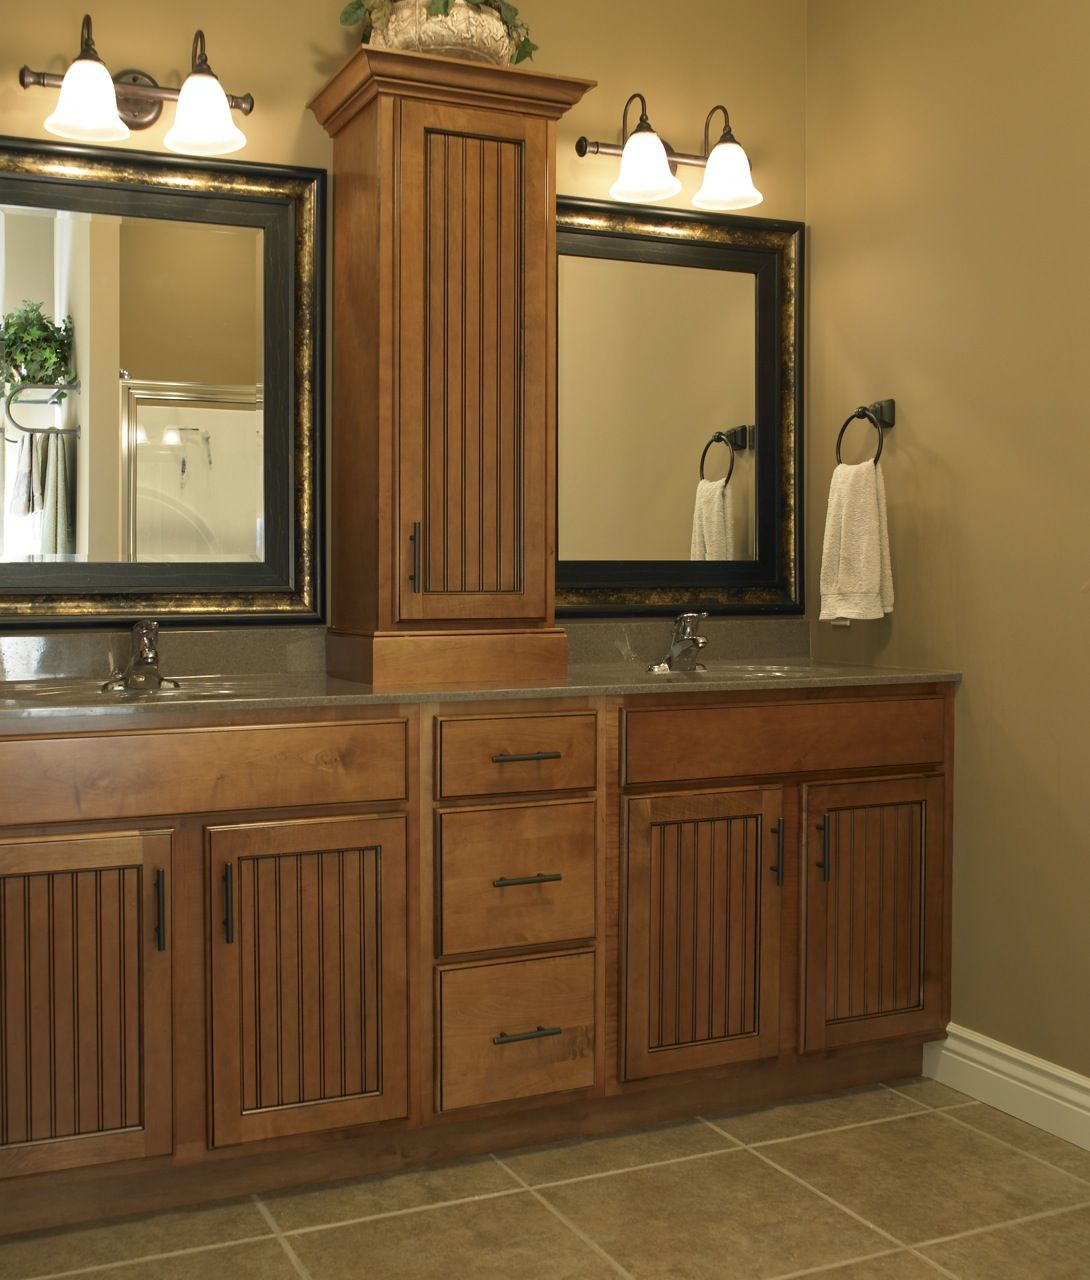 Double Vanity With Lamp Lighting Above The Mirror Baths